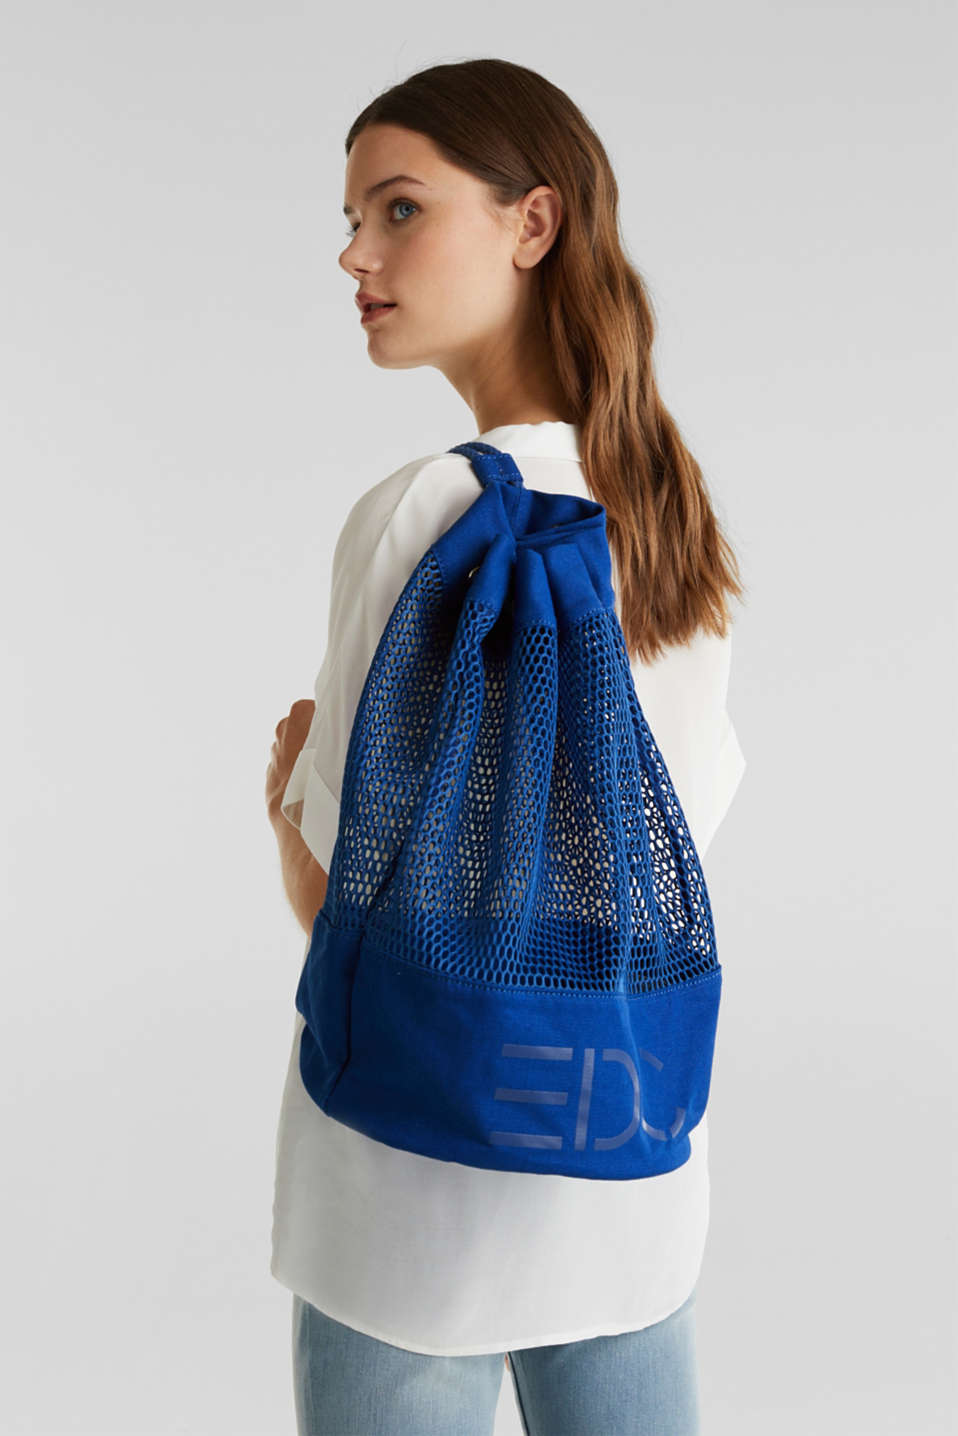 Airy mesh bag, BRIGHT BLUE, detail image number 1